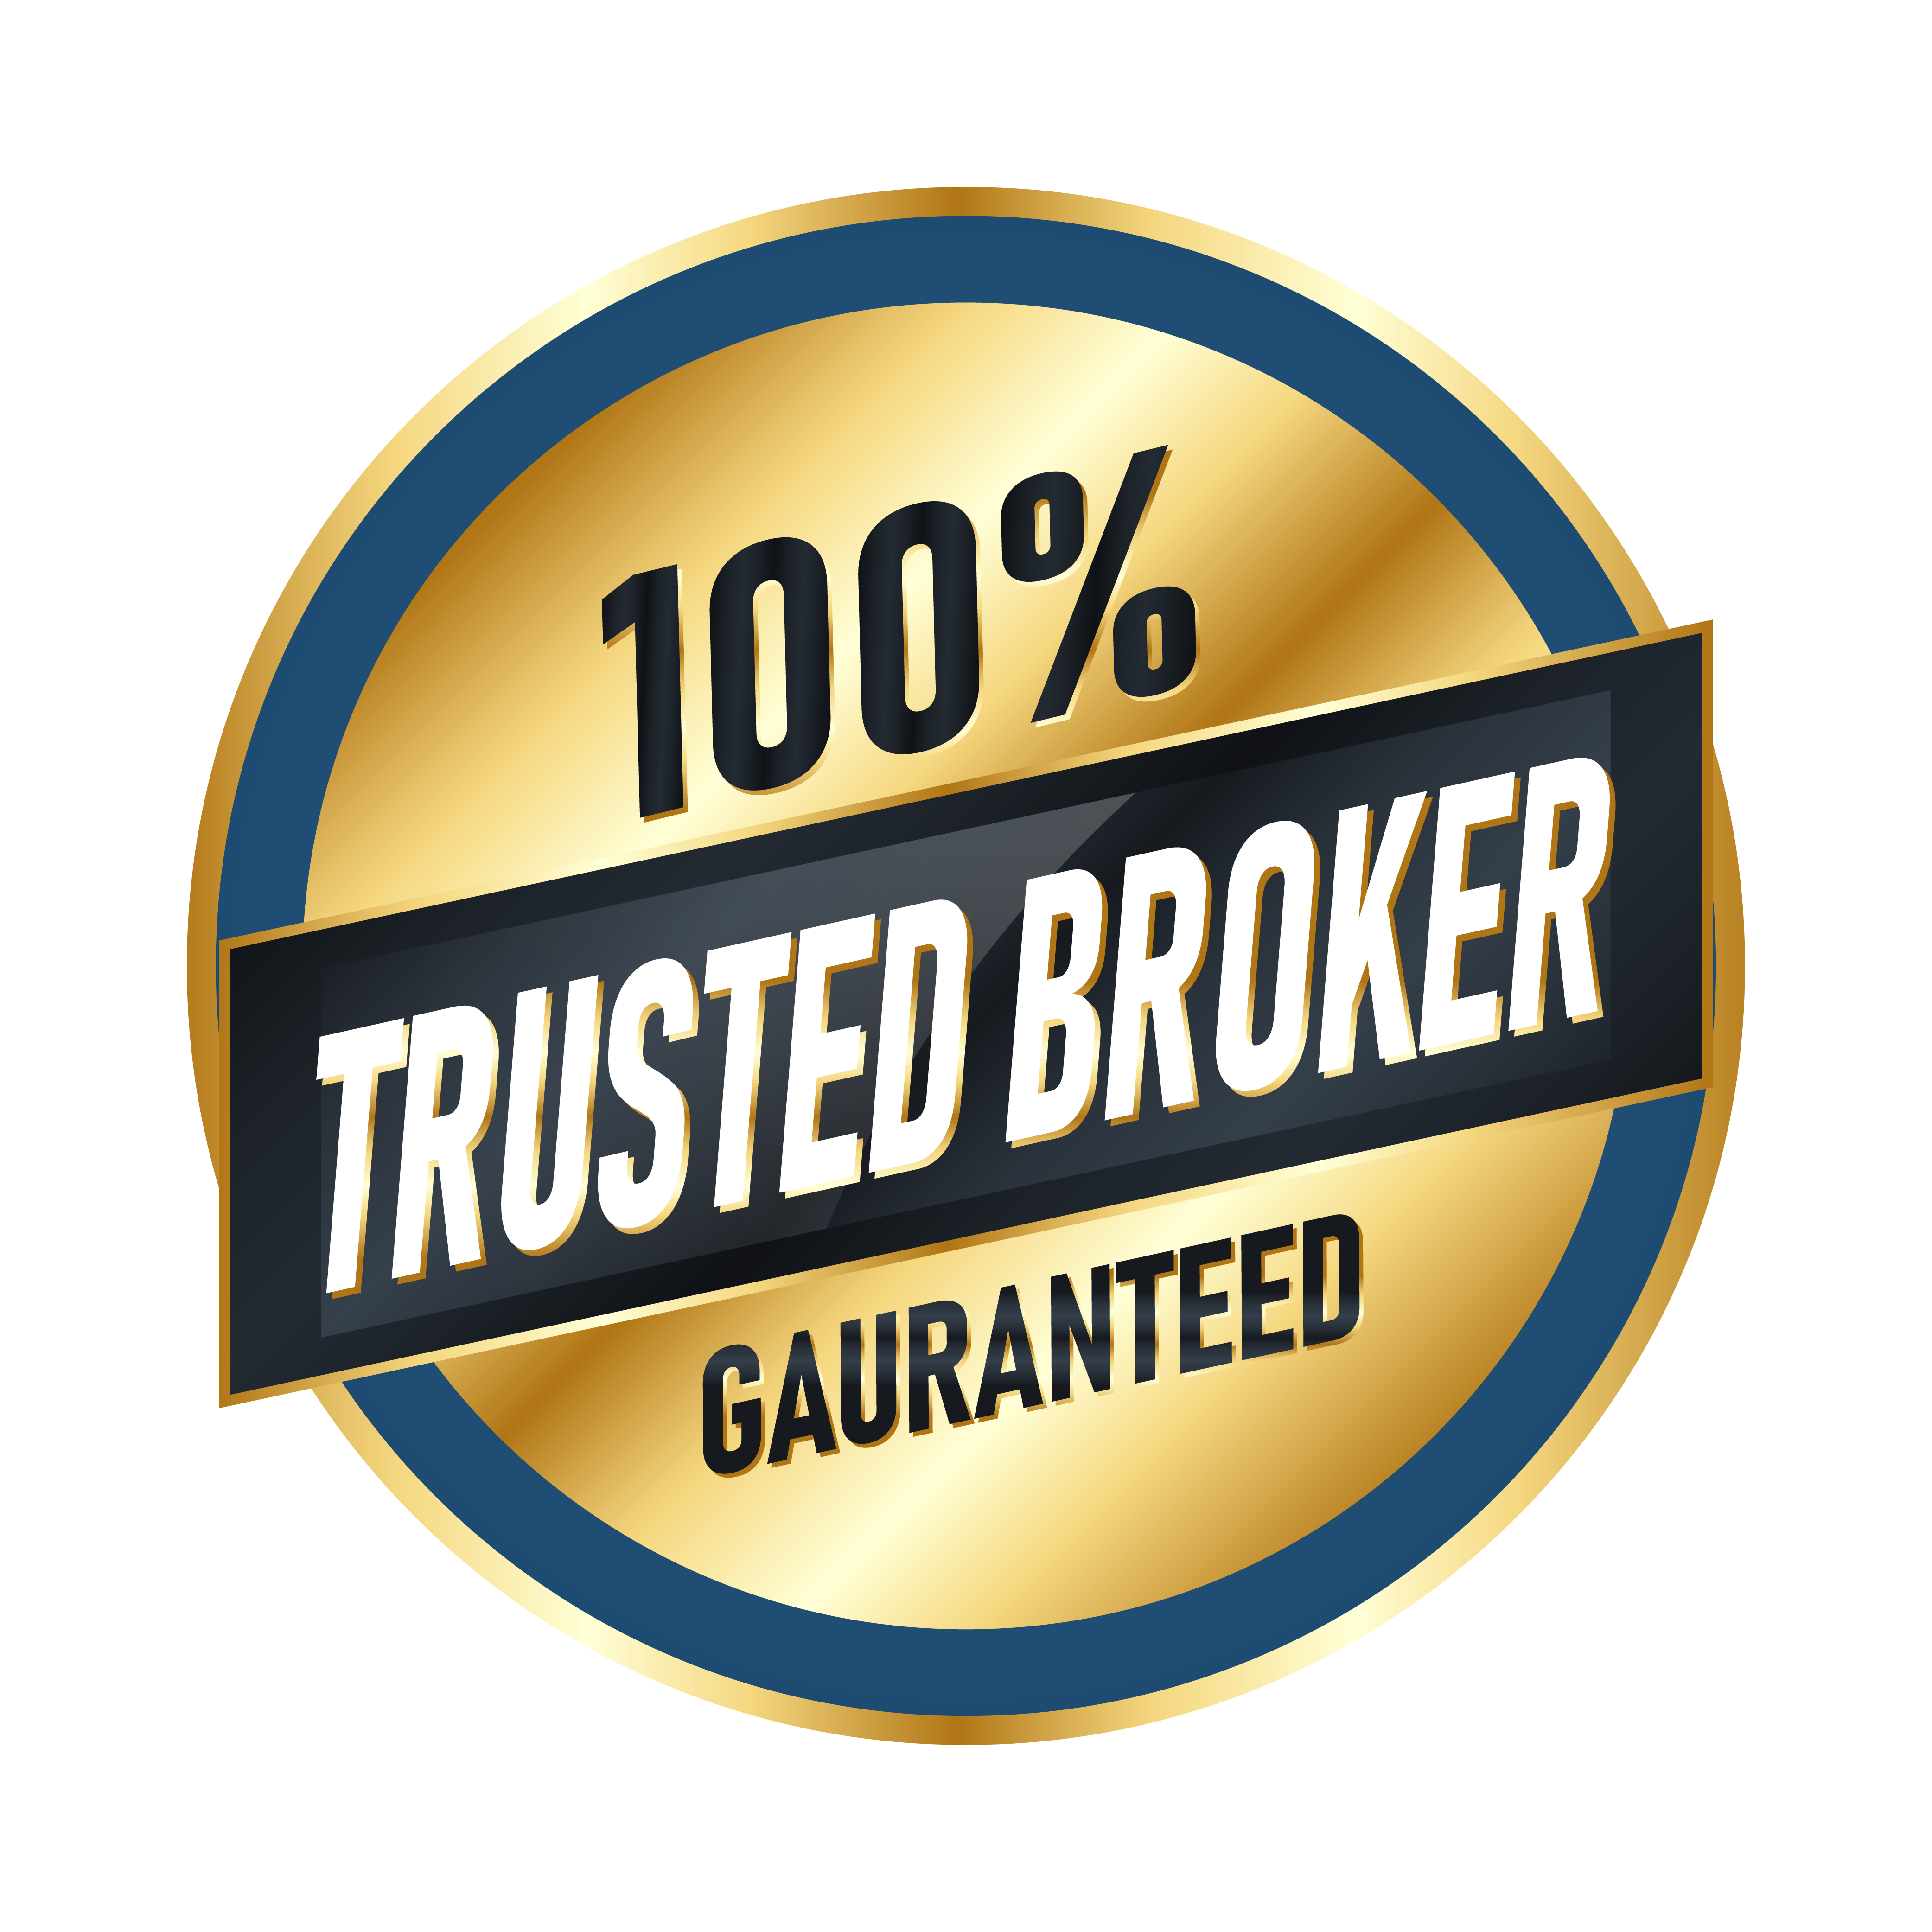 FP Markets is a trusted Broker